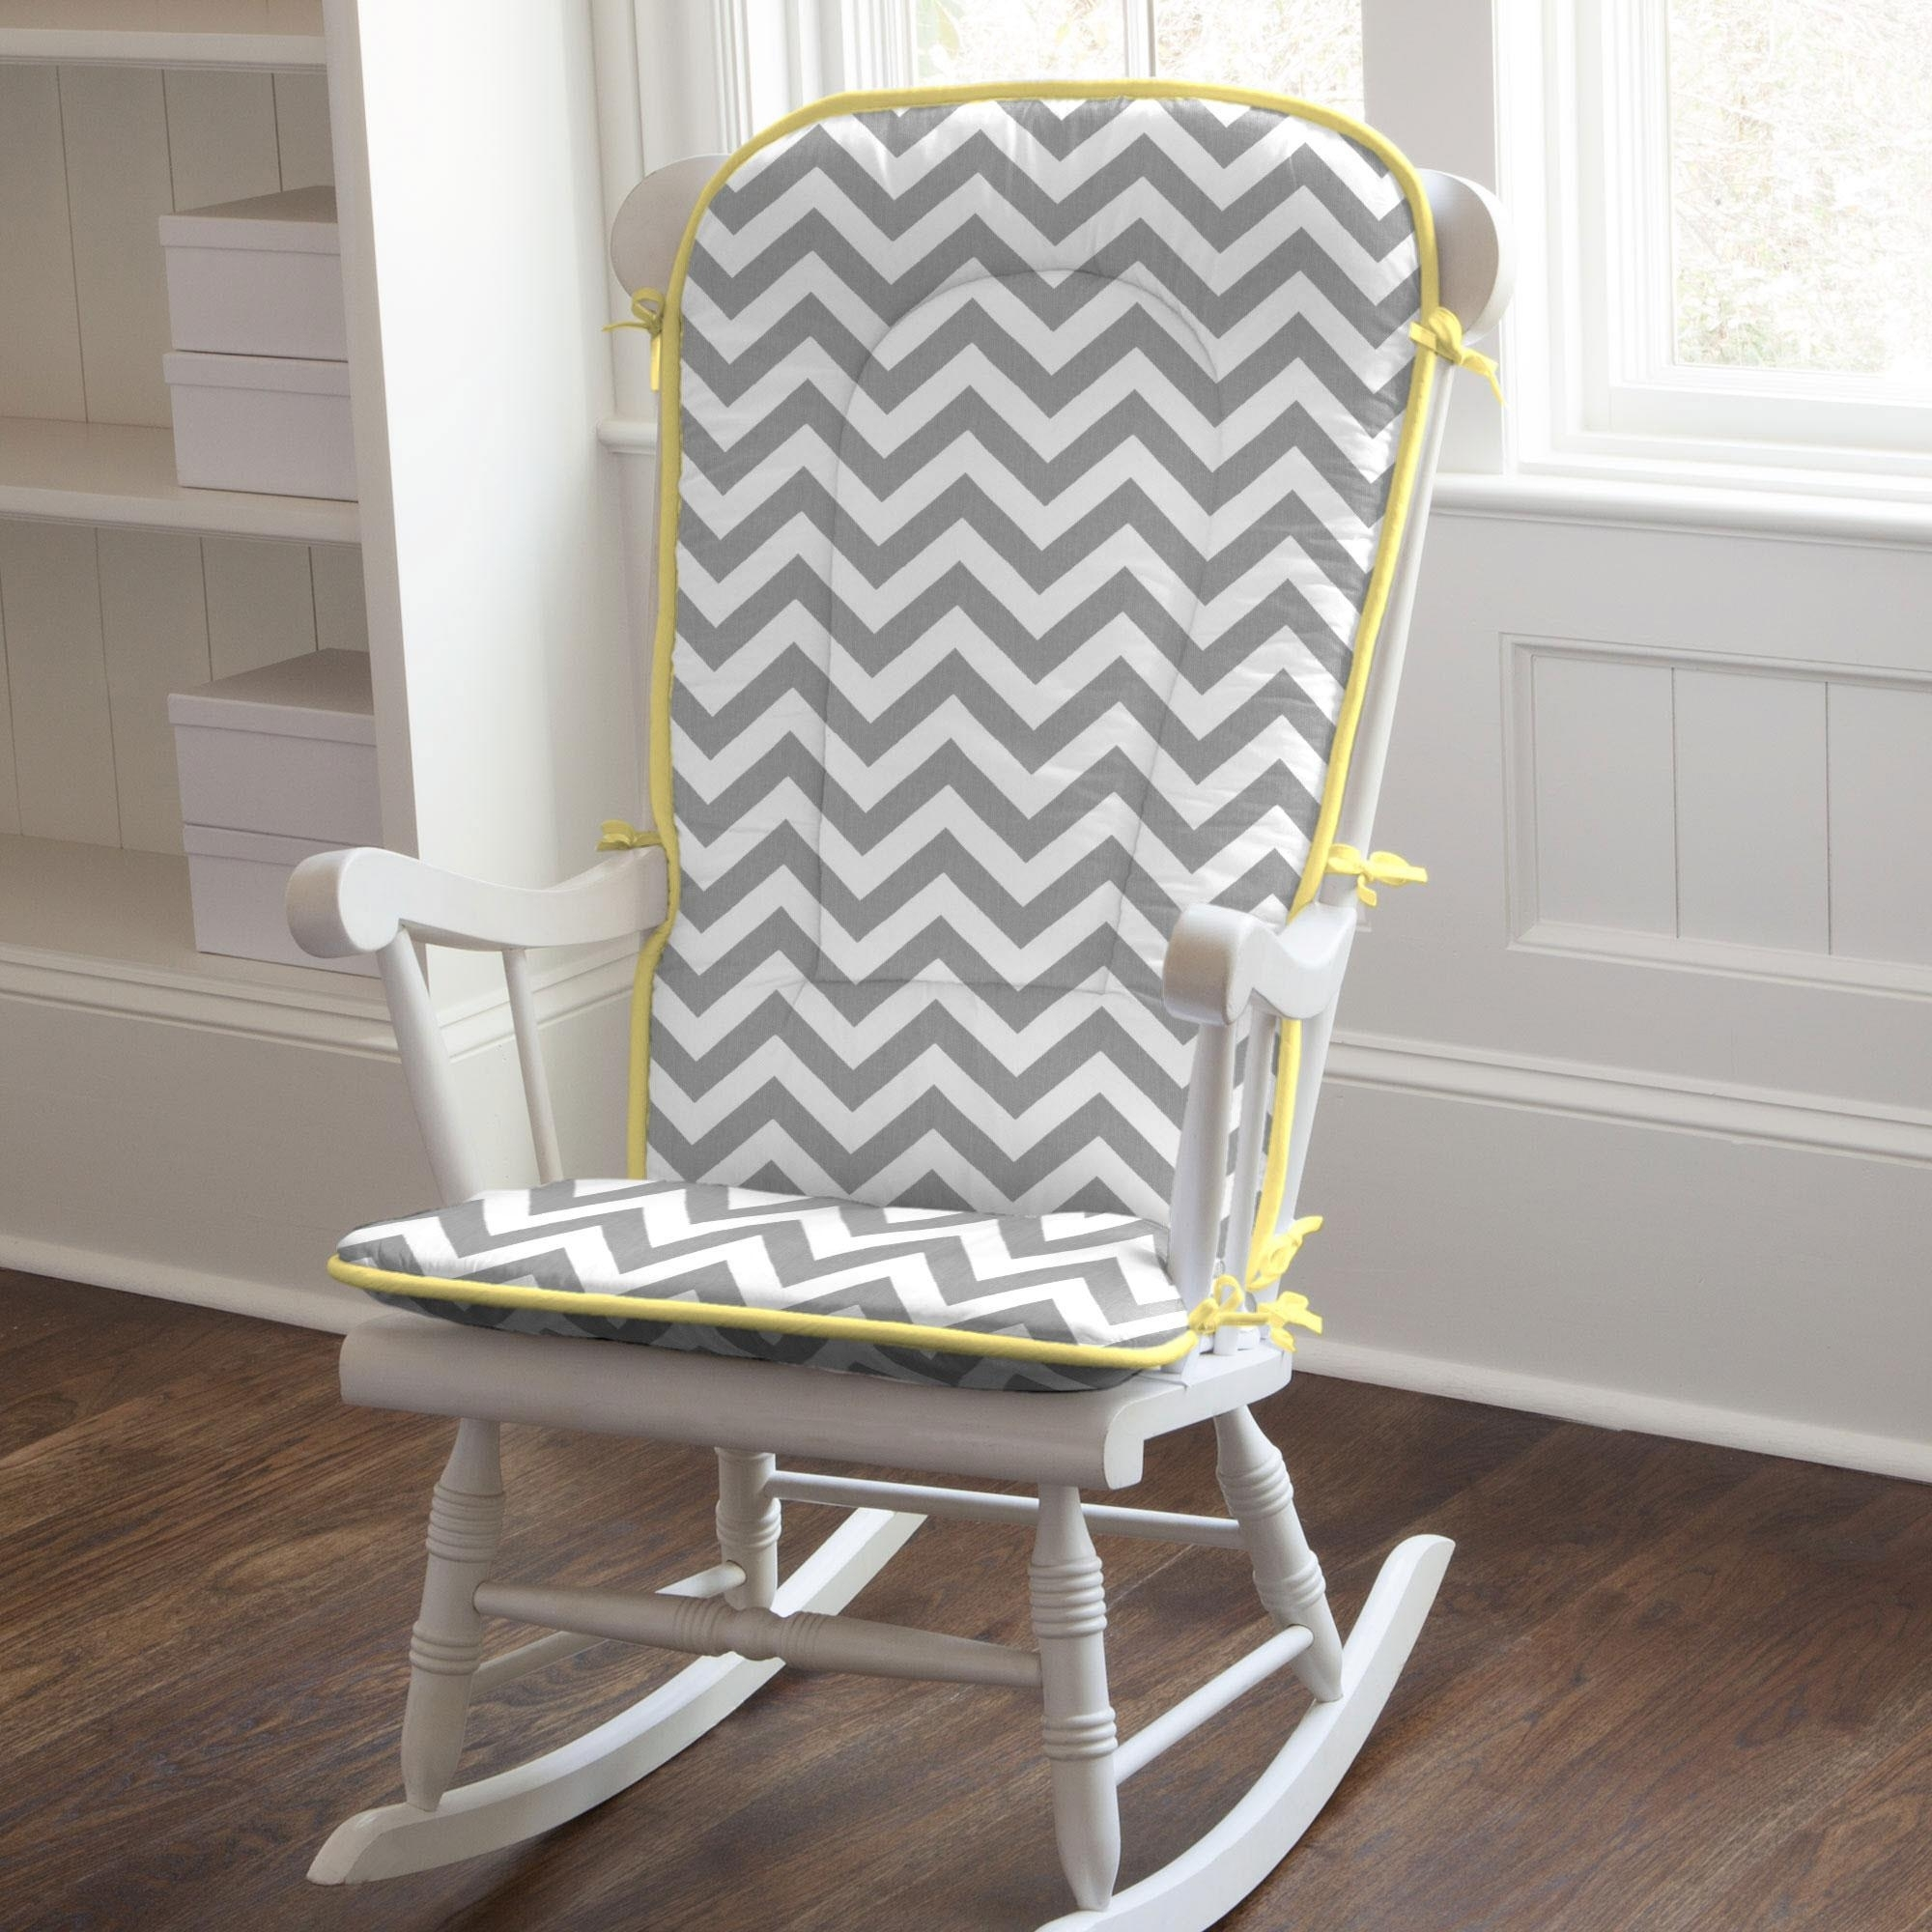 Rocking Chair Pads | Cushions For Rocking Chairs | Carousel Designs Intended For Yellow Outdoor Rocking Chairs (#8 of 15)